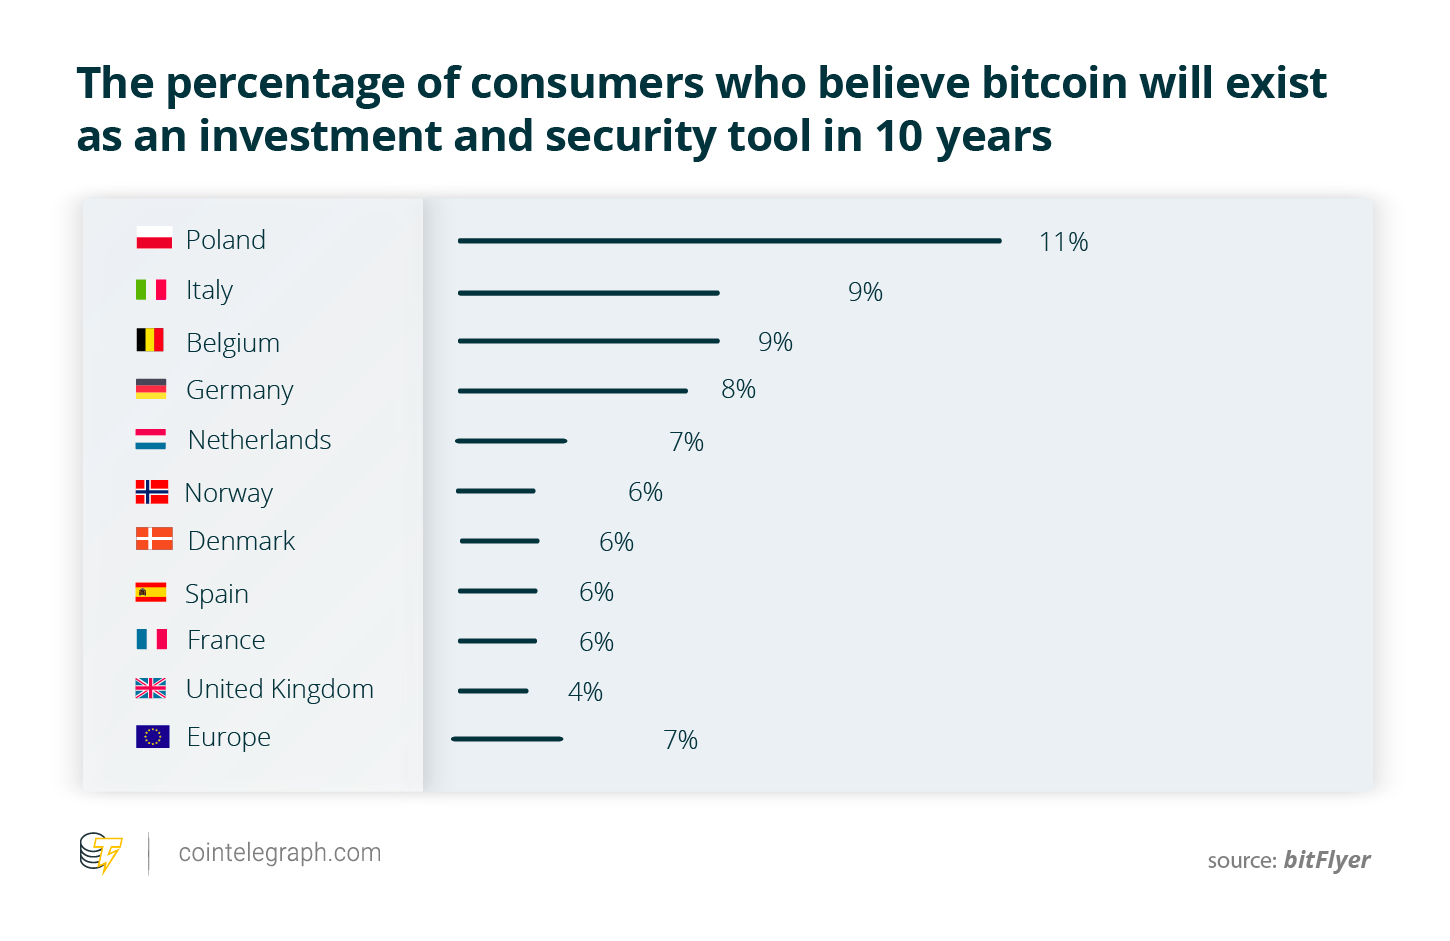 The percentage of consumers who believe bitcoin will exist as an investment and security tool in 10 years